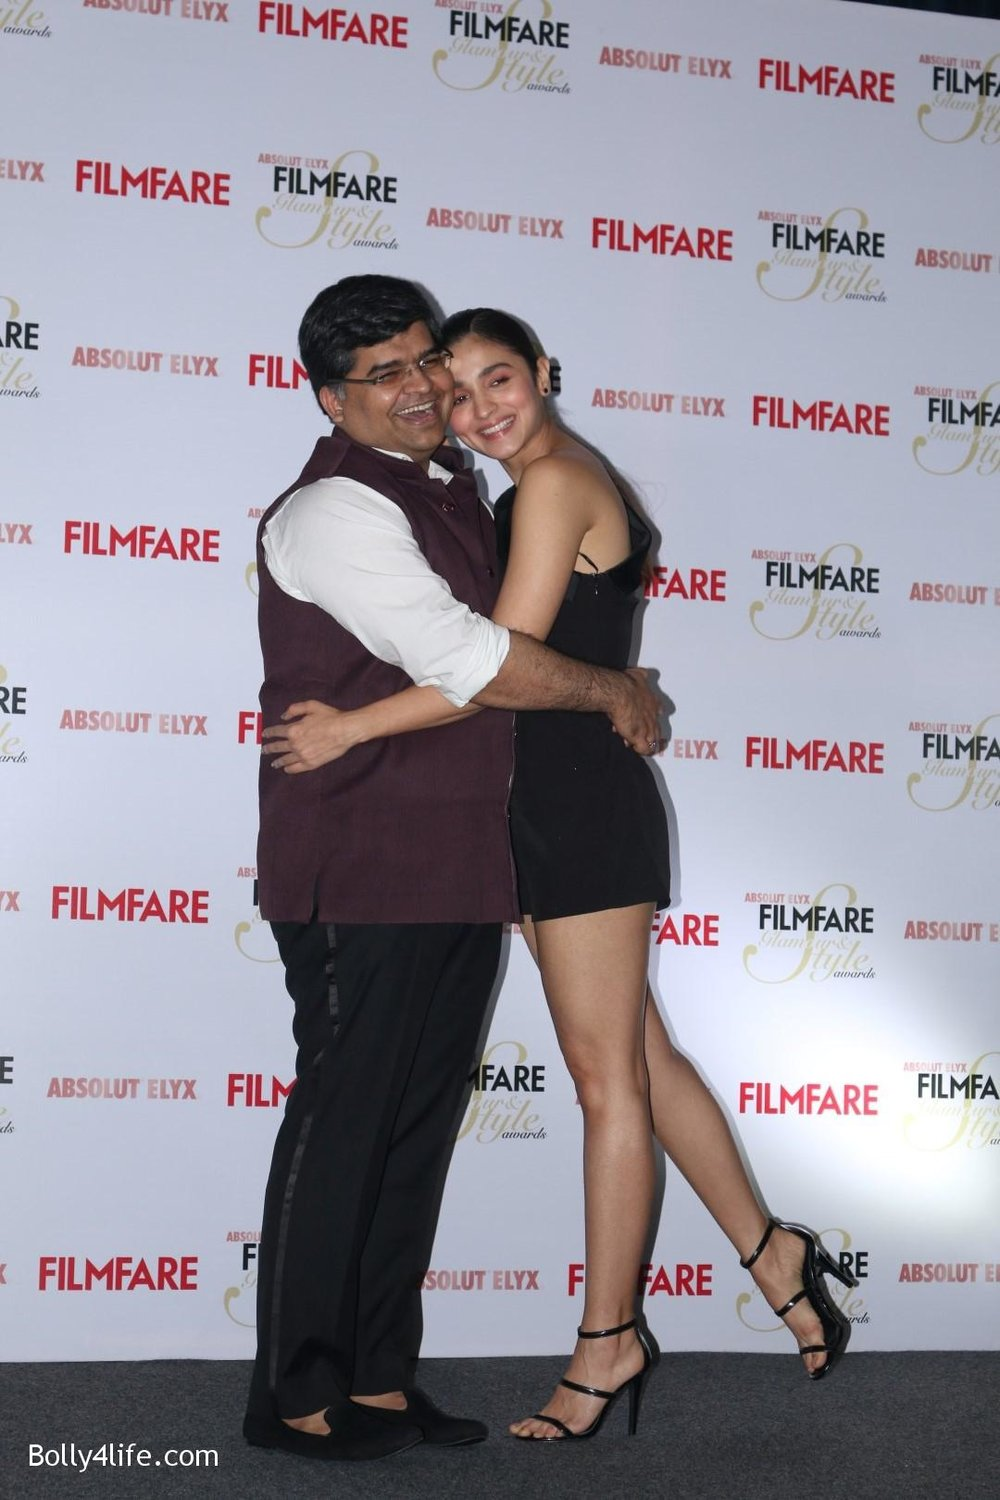 Alia-Bhatt-during-the-Absolut-Elyx-Filmfare-Glamour-and-Style-Awards-cover-launch-18.jpg